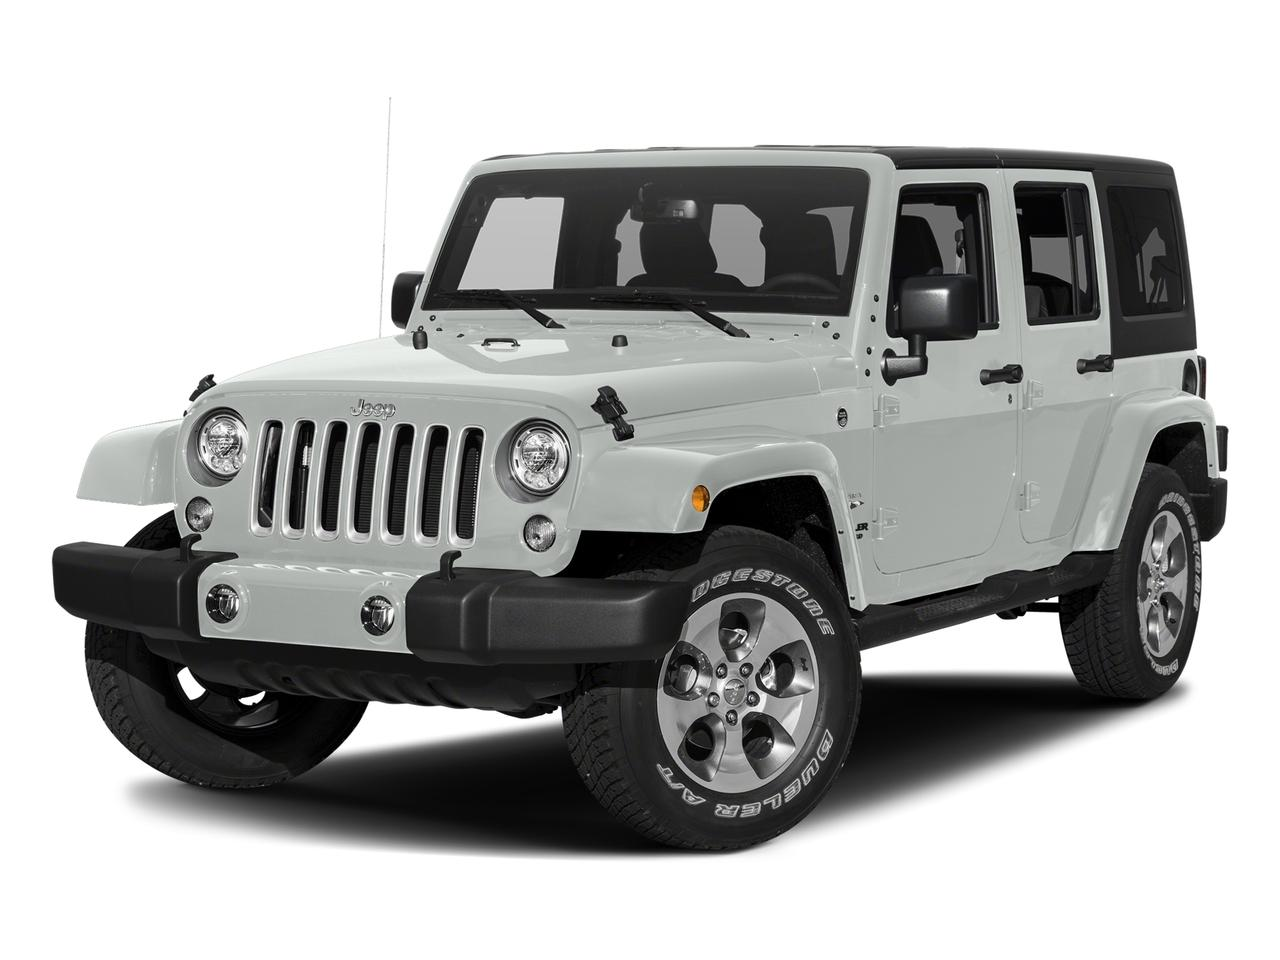 2017 Jeep Wrangler Unlimited Vehicle Photo in Southborough, MA 01772